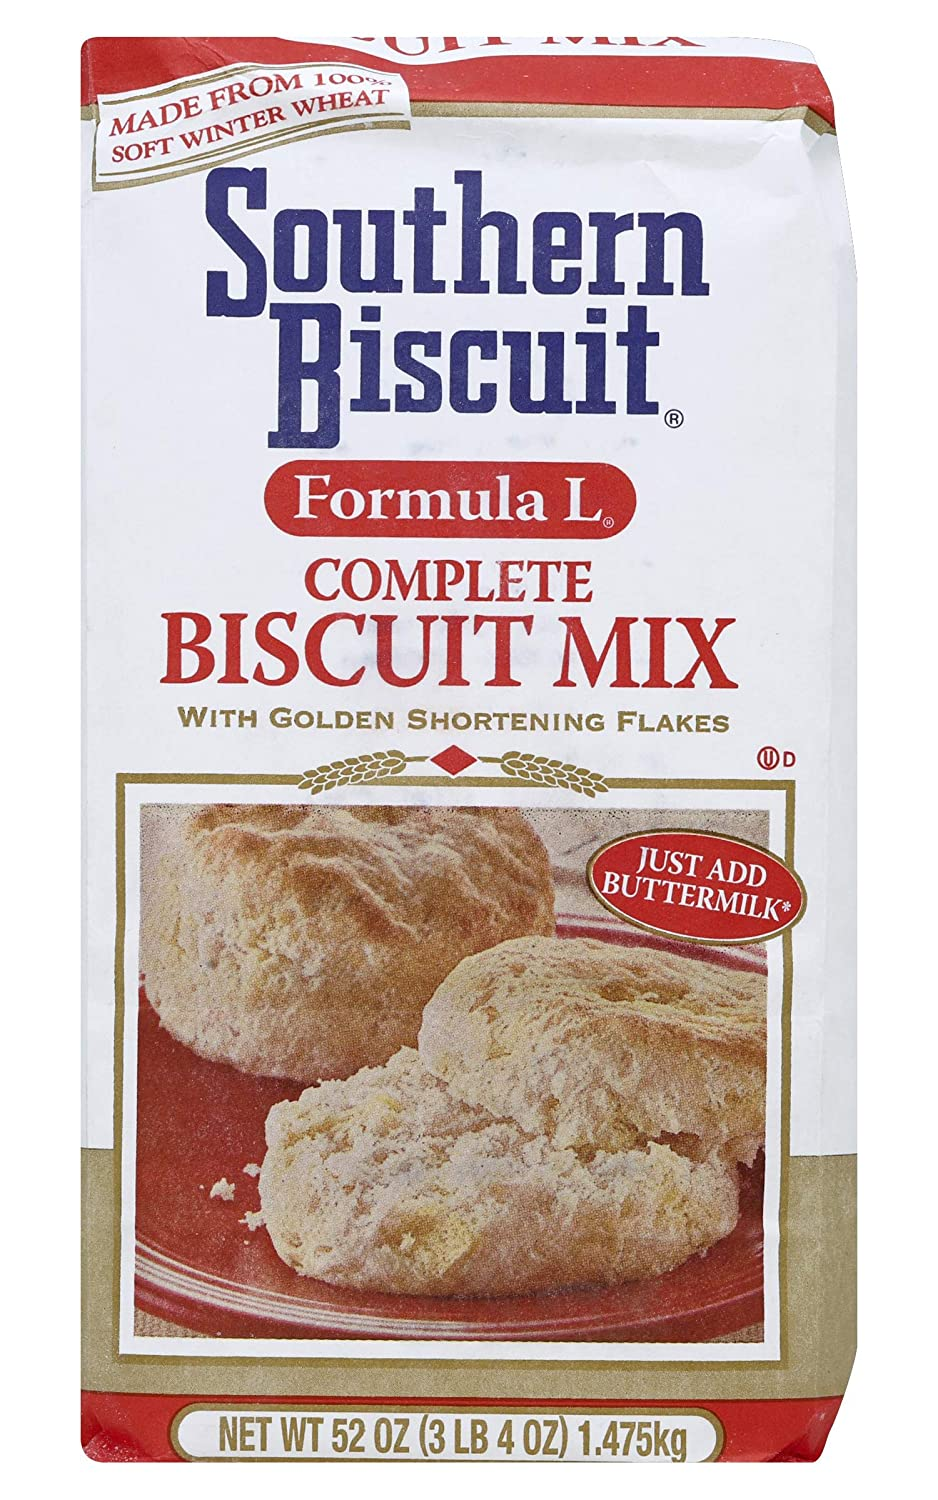 Southern Biscuit Formula L Complete W/Golden Shortening Flakes Biscuit Mix, 52 Ounce